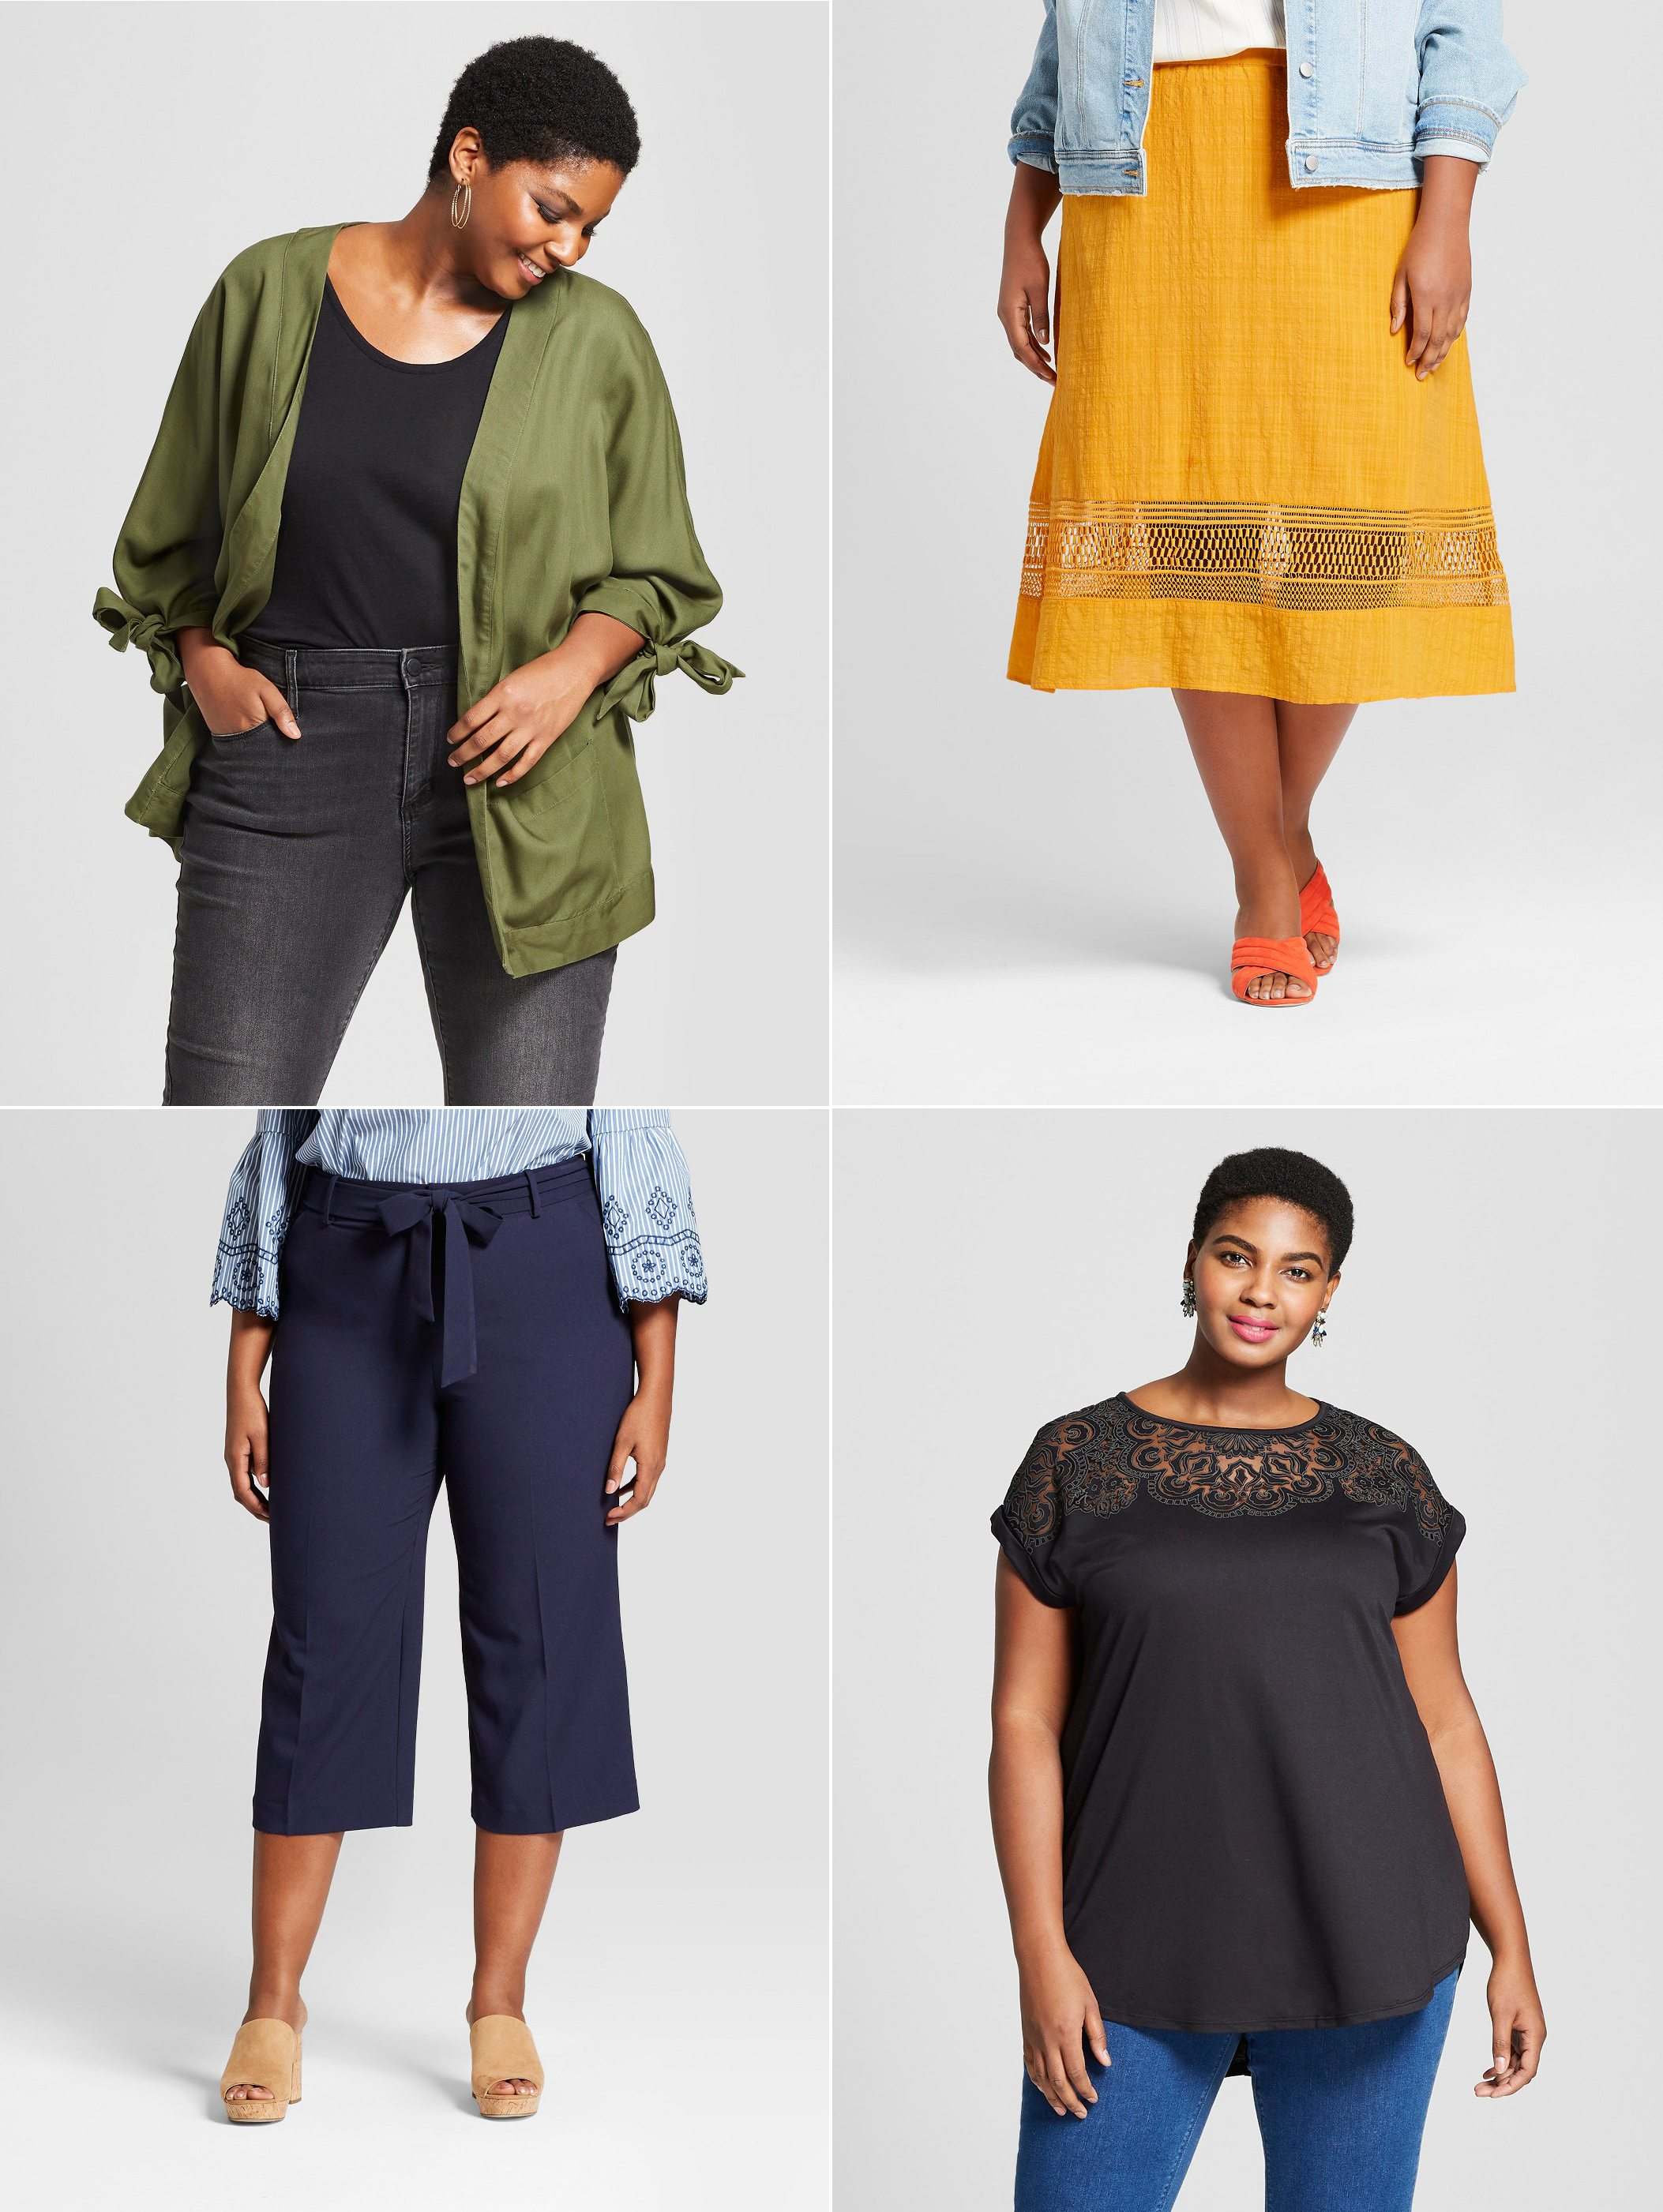 Where to shop for stylish and trendy plus size clothing - click through for all @cydconverse's favorite places to shop! | Target Ava & Viv Review